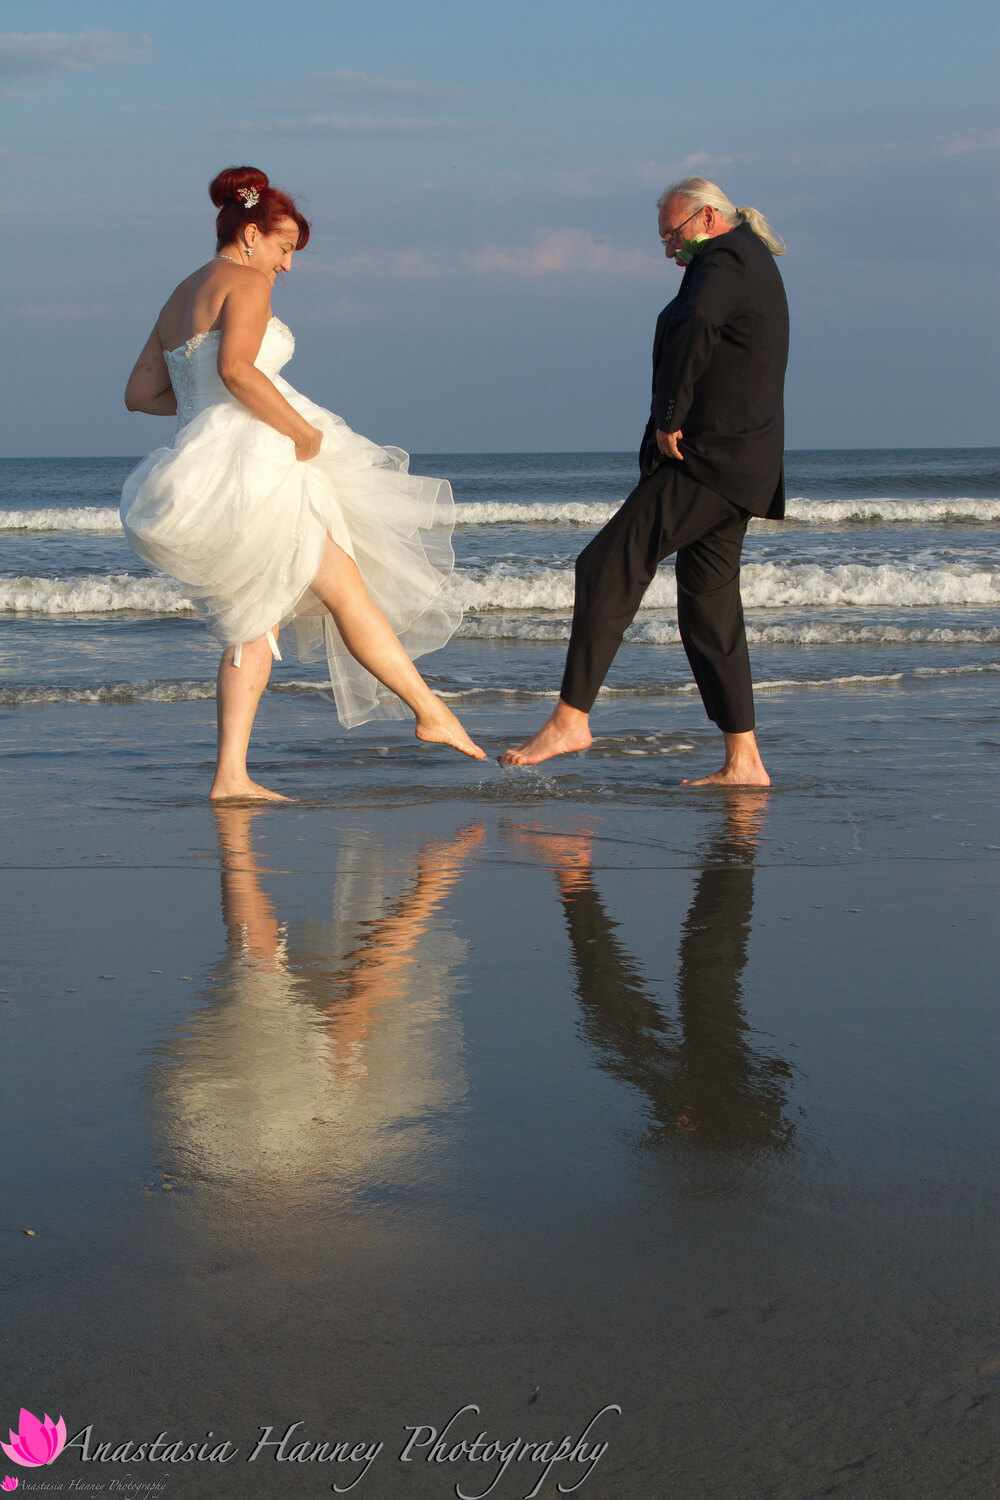 Wedding Photography of Bride and Groom on Beach with Reflection in Ocean City New Jersey by Anastasia Hanney Photography AHanneyPhoto